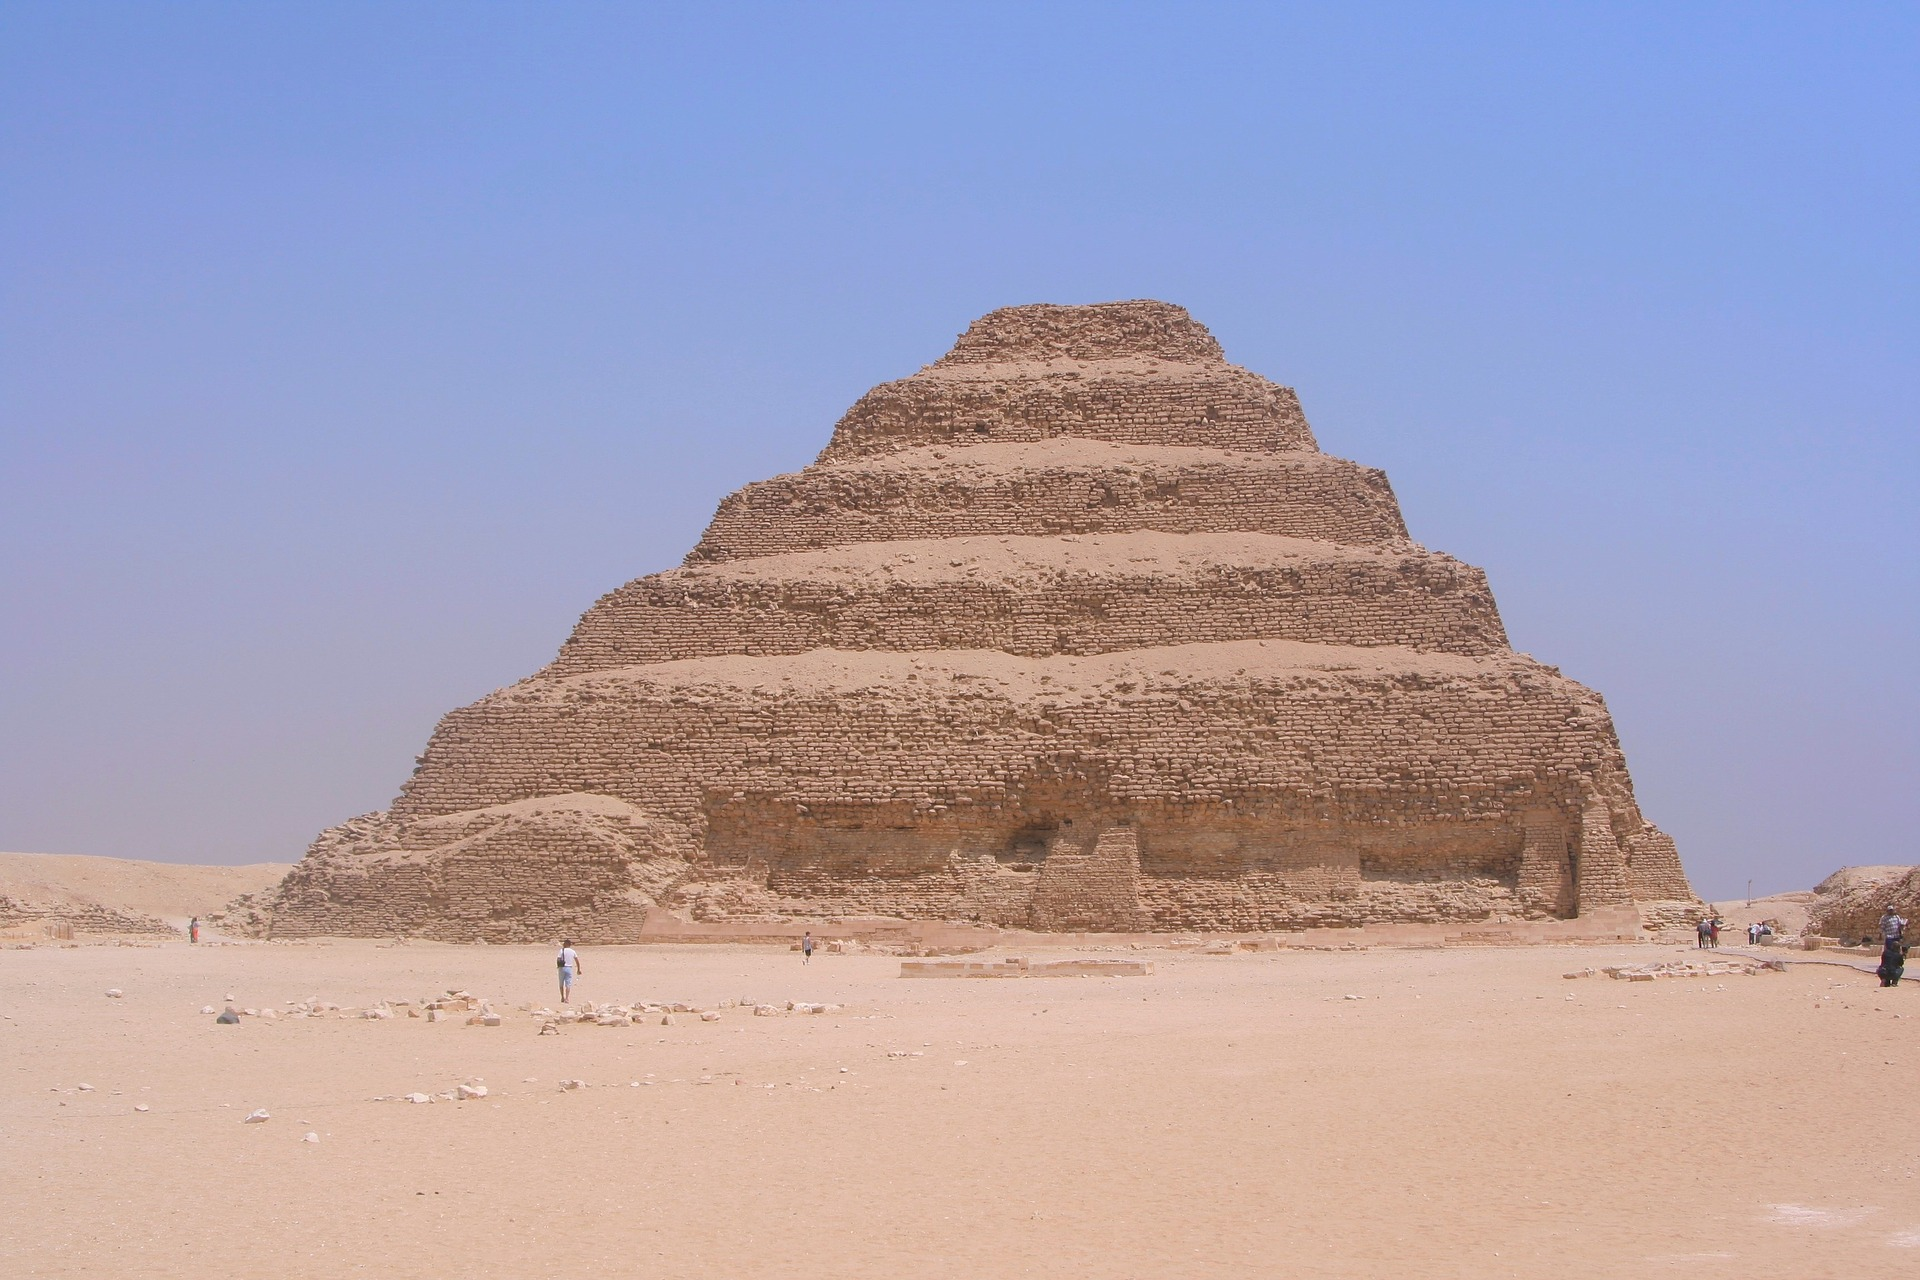 The Treasures of Egypt - Saqqara, Giza, Egypt